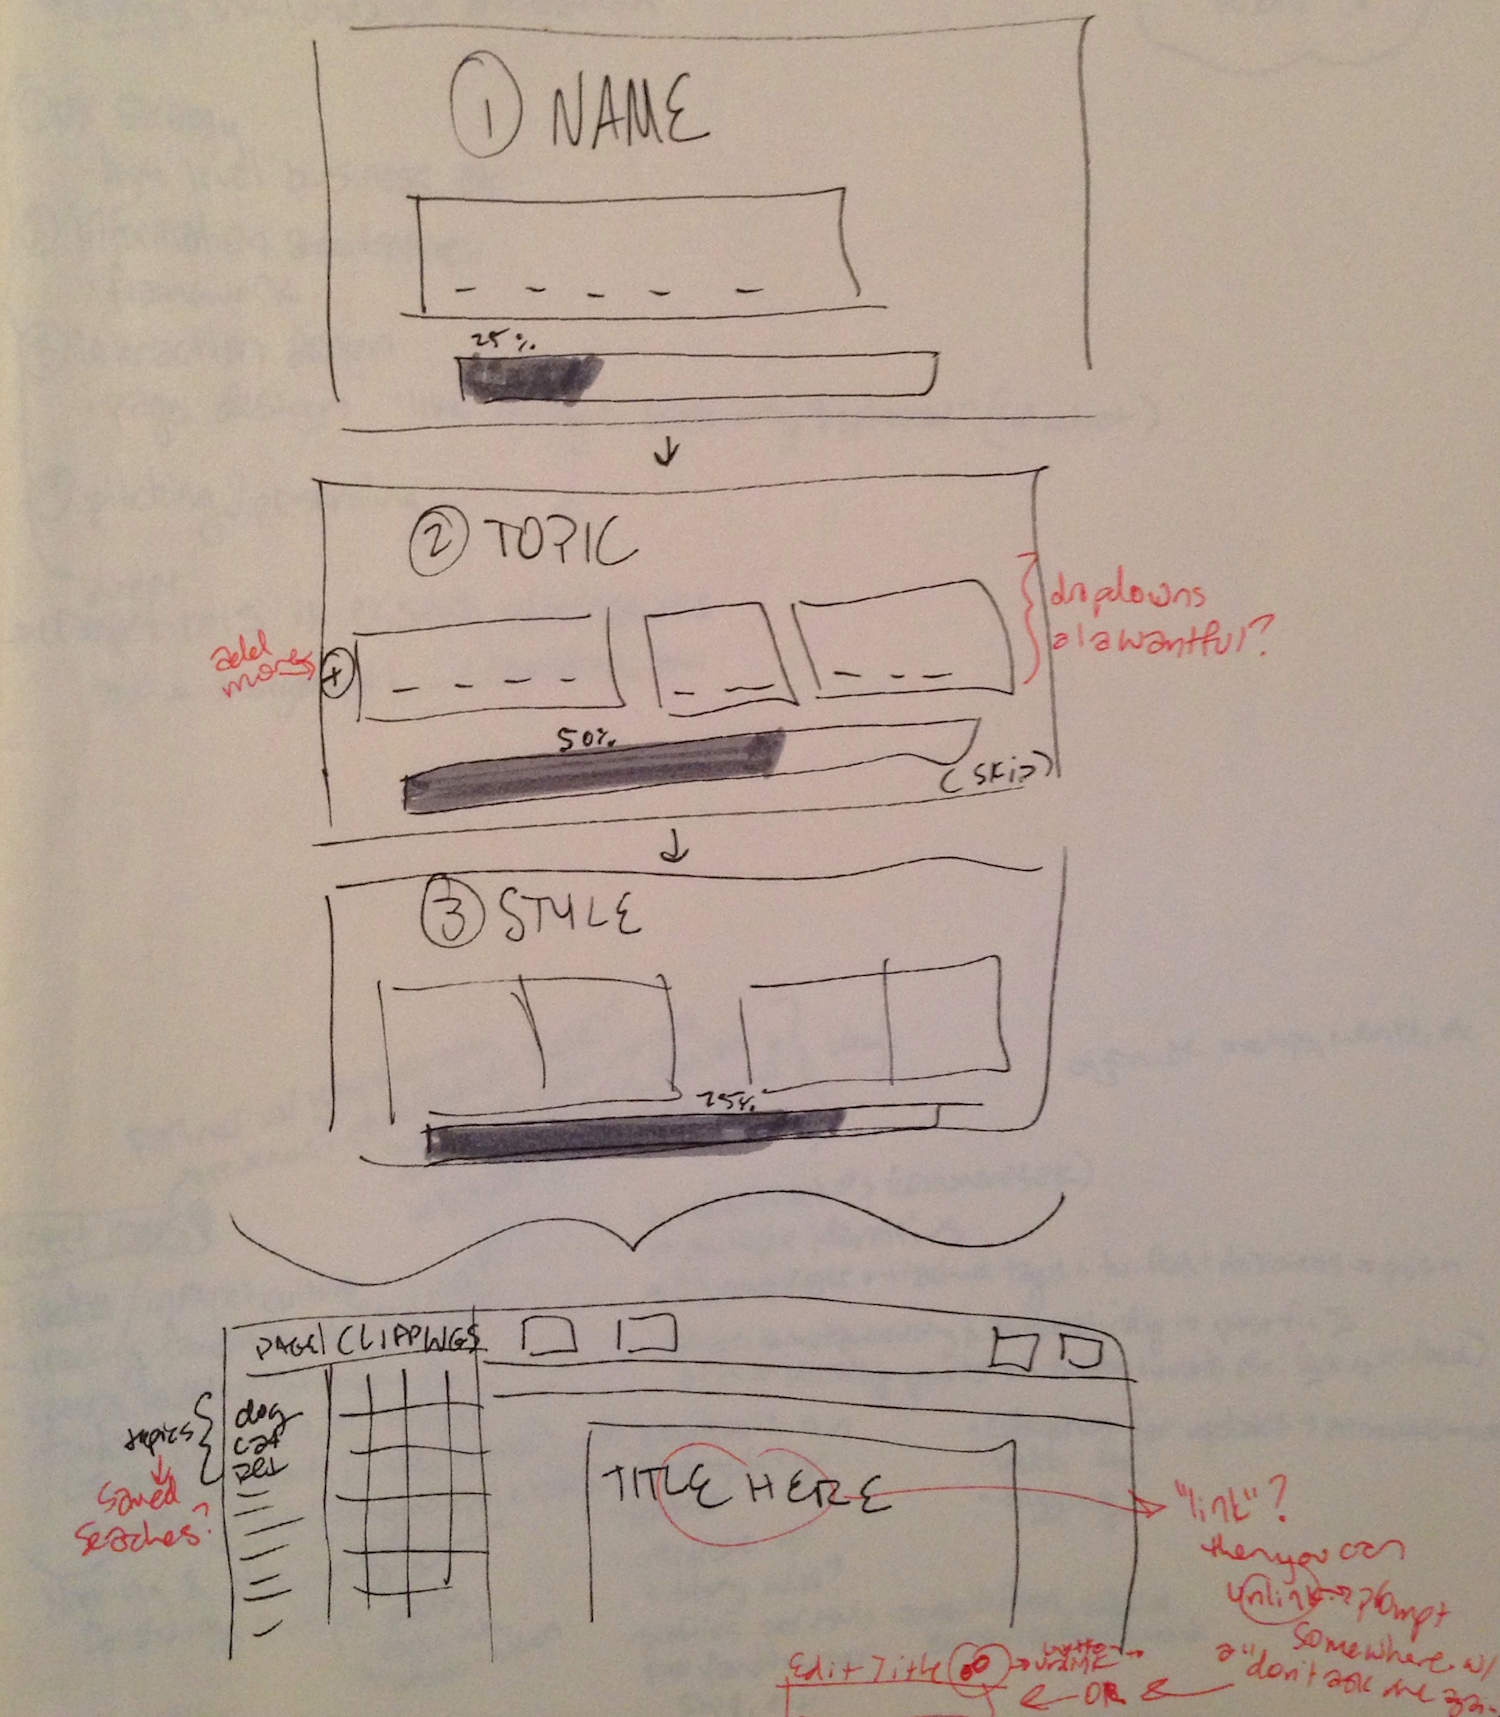 V1 sketch of a step-by-step onboarding flow